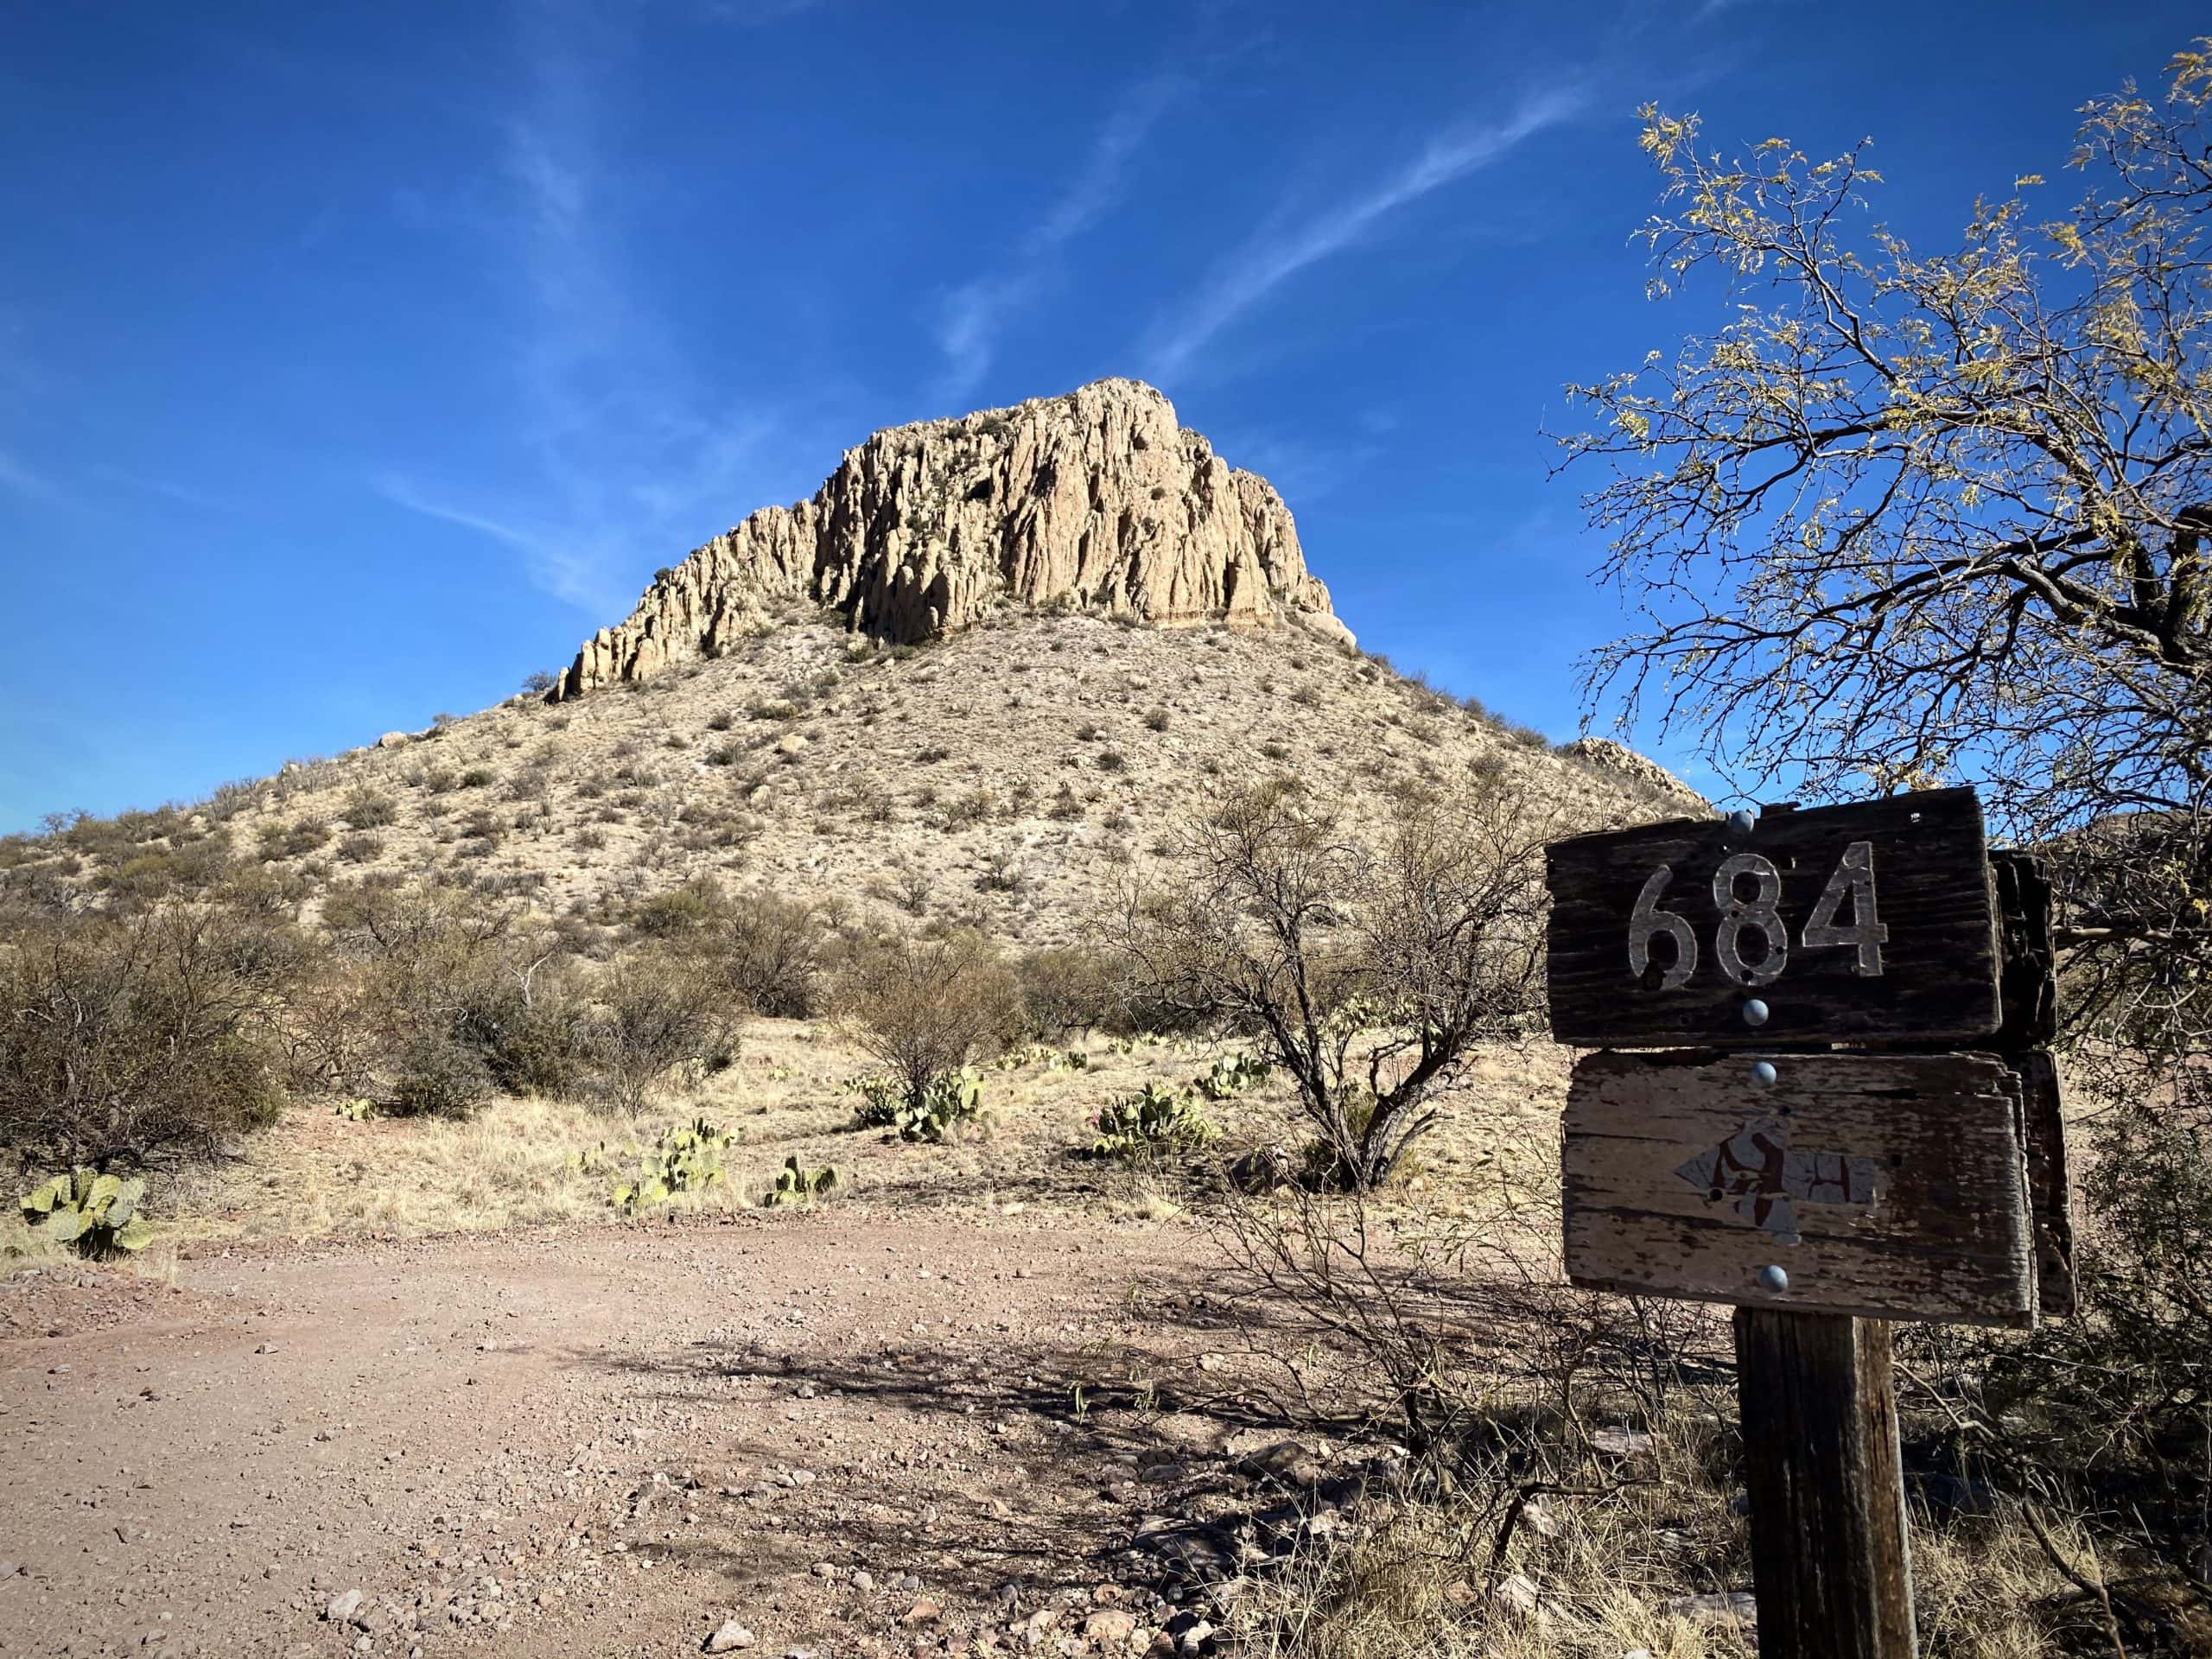 Tall peak with Forest Service sign for road 684 in Tumacacori Mountains south of Tucson.